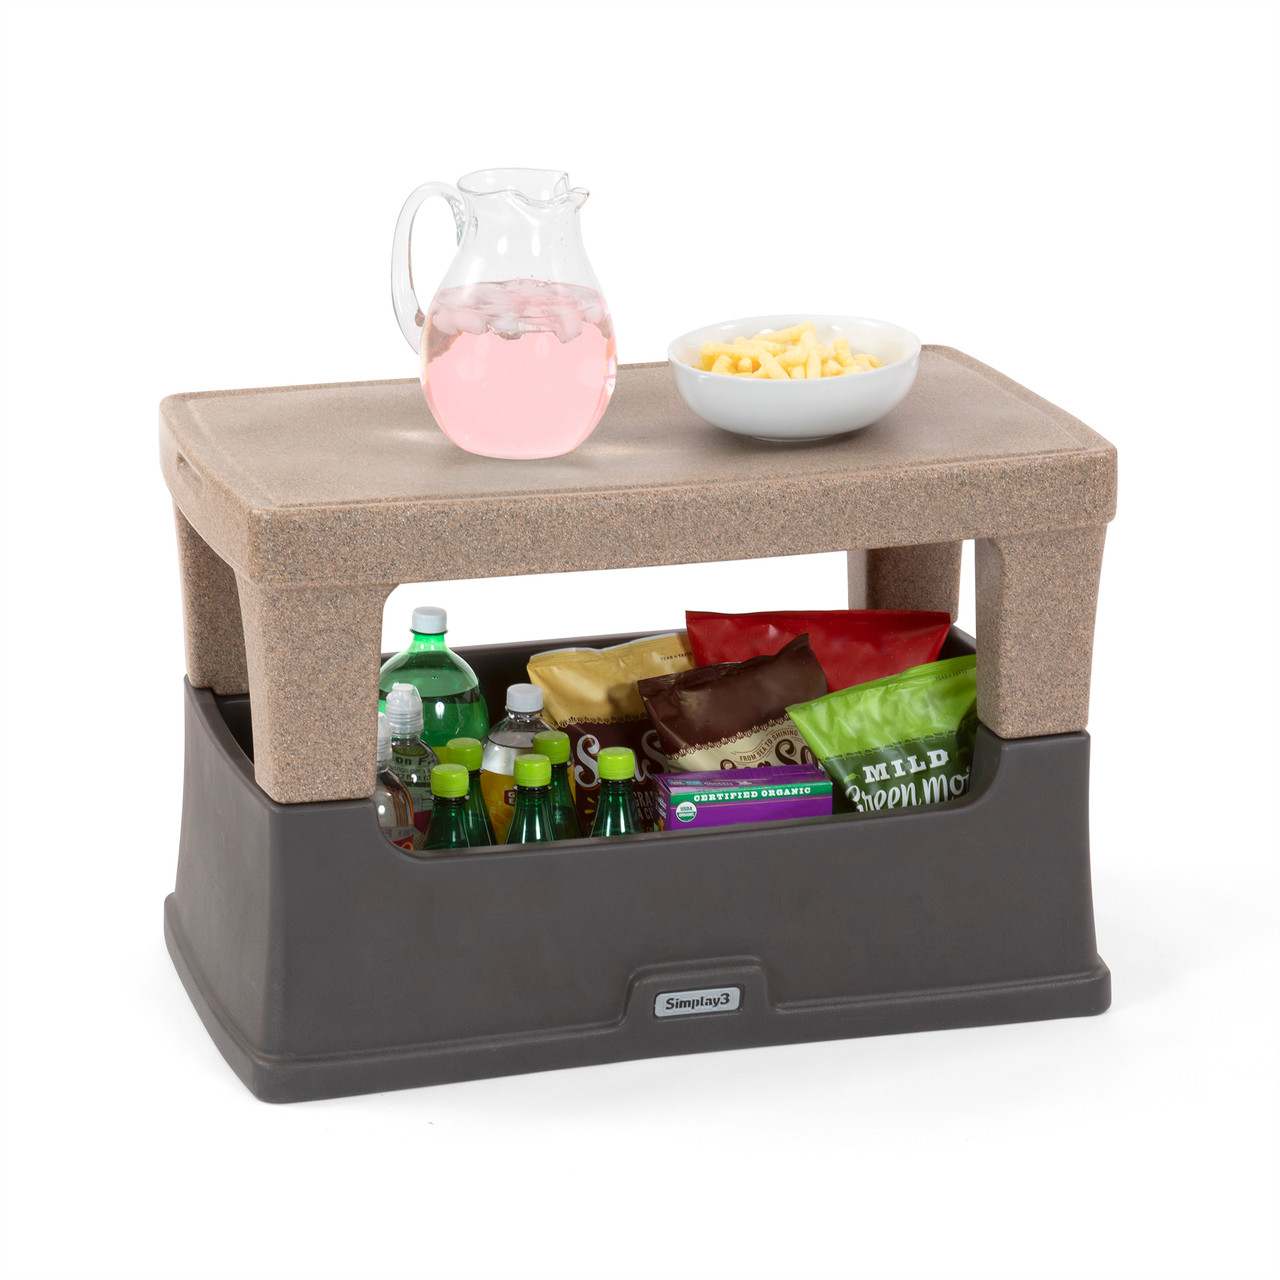 Serve and Store Indoor / Outdoor Multi-Use table for patios, decks, dorms and more